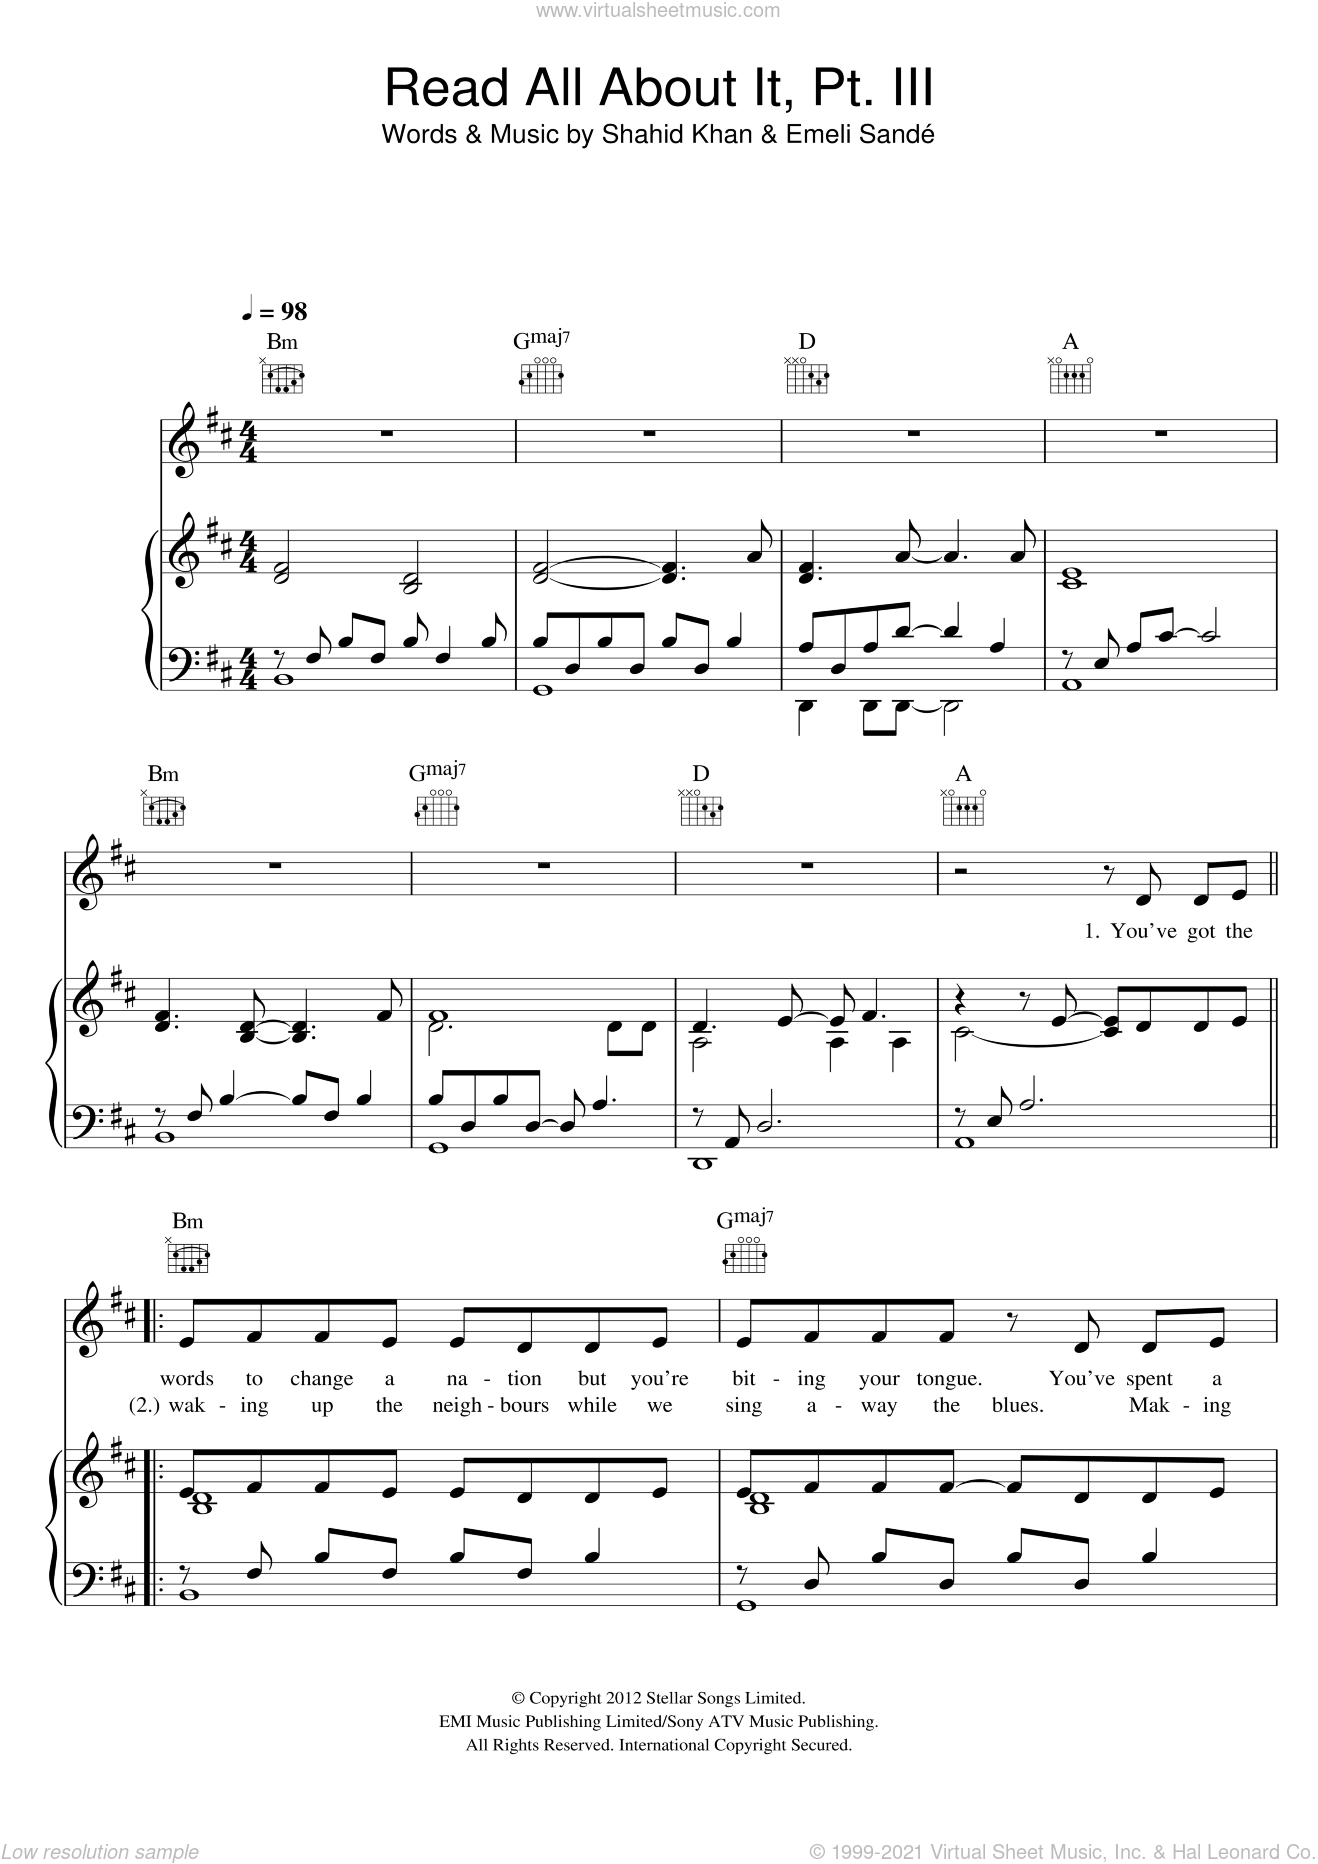 Read All About It, Part III sheet music for voice, piano or guitar by Emeli Sande and Shahid Khan, intermediate skill level